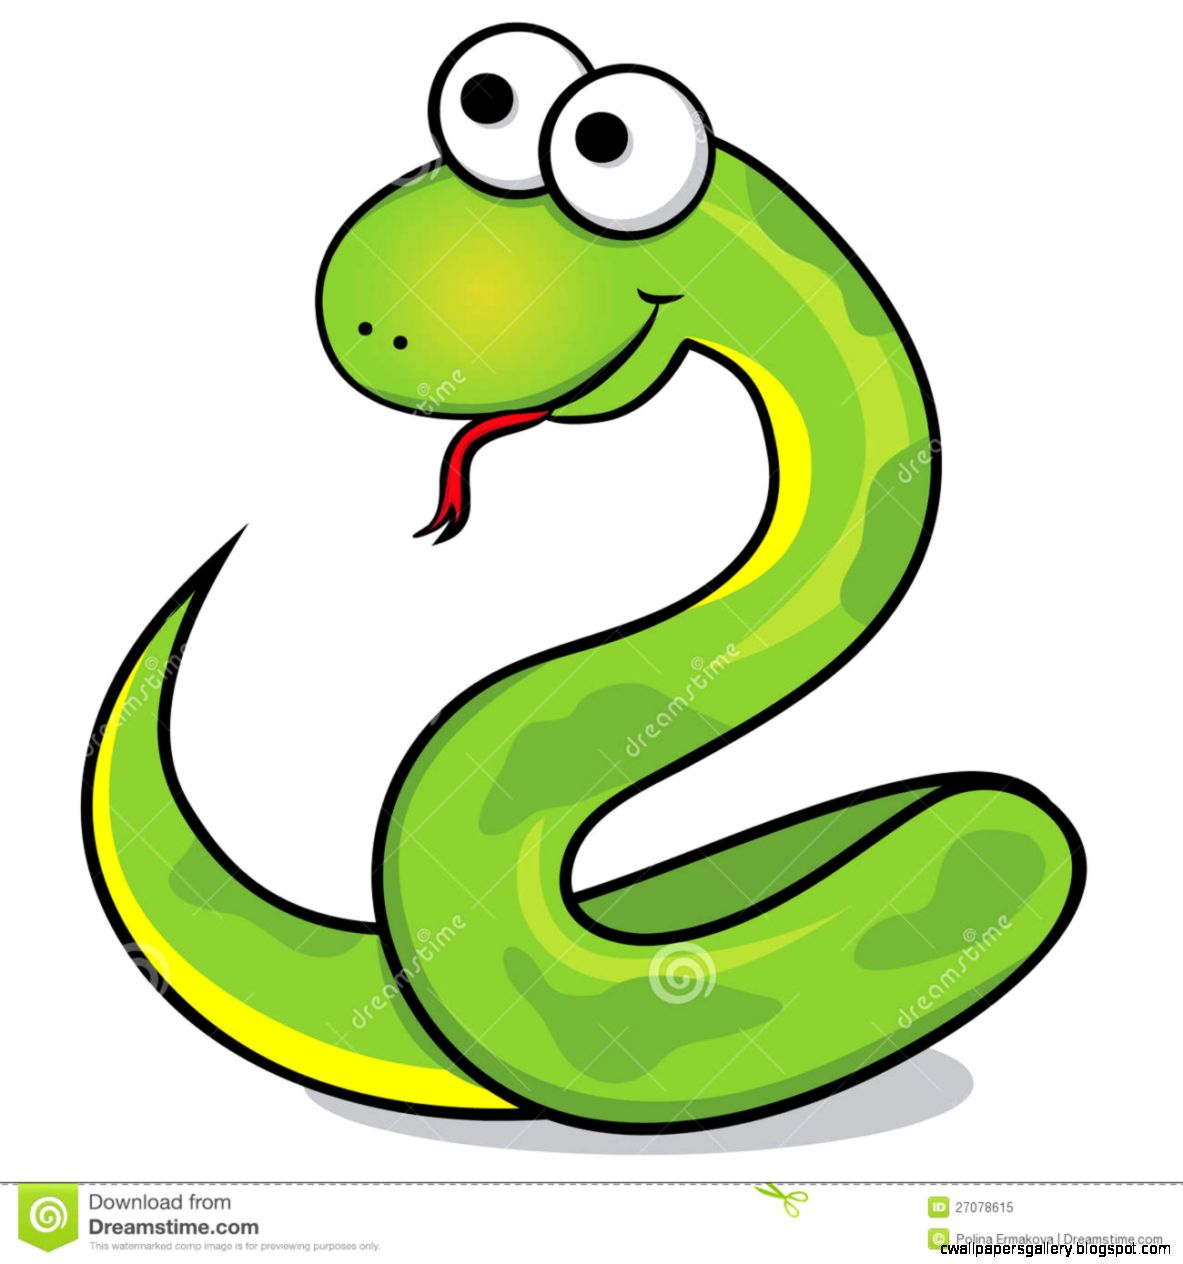 Smooth Green Snake clipart #10, Download drawings